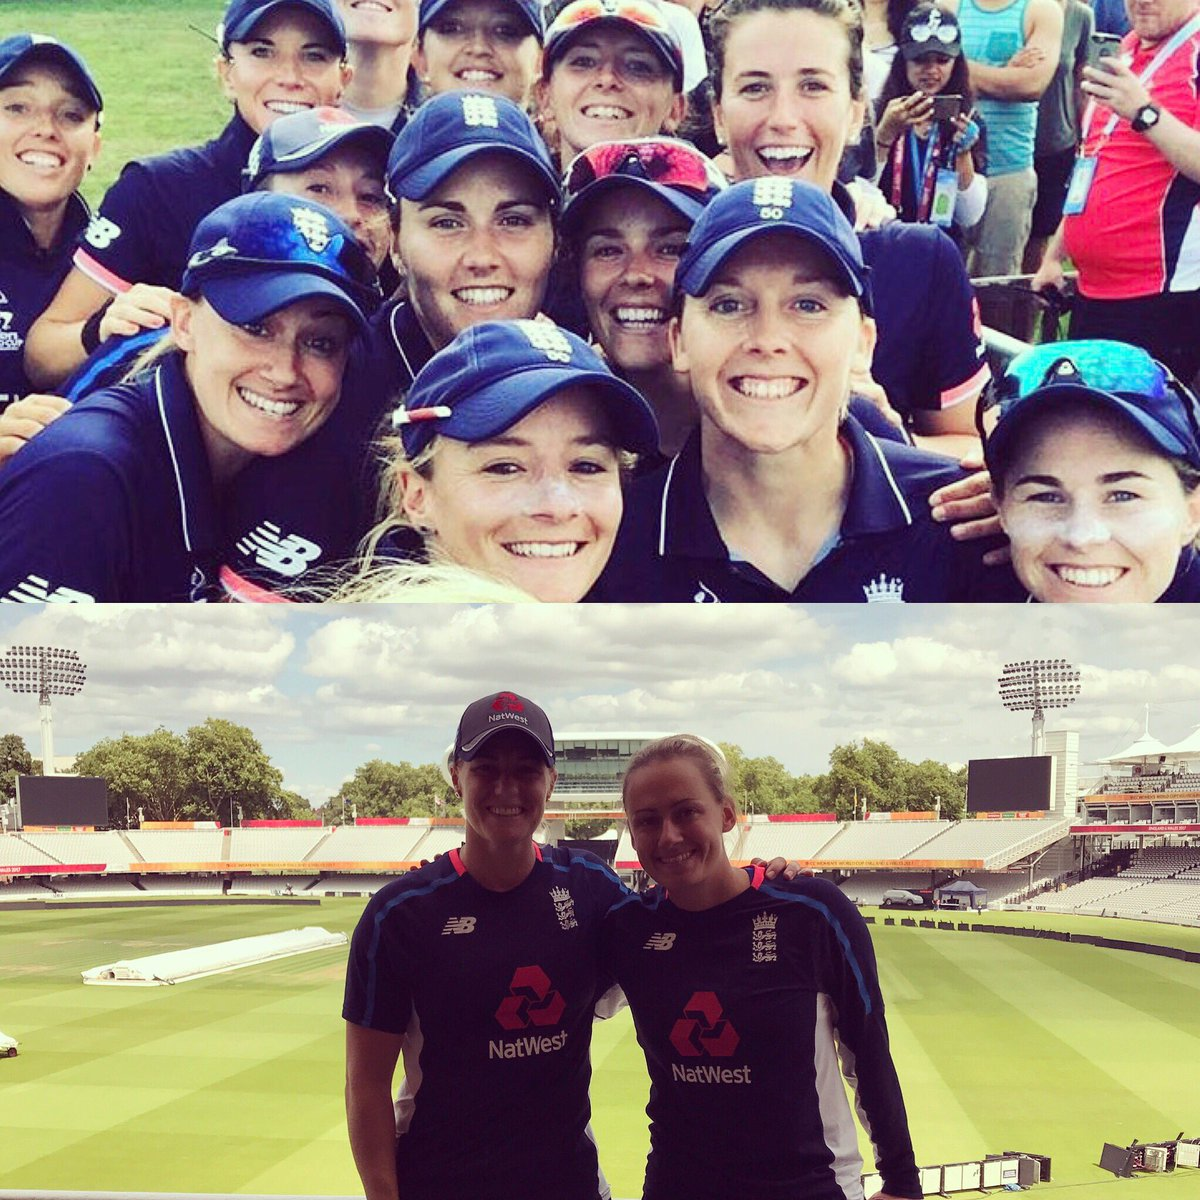 Never in my career did I think we would play at a sold out Lords in a World Cup final! Just amazing! #wwc17 https://t.co/riaIbol9b5